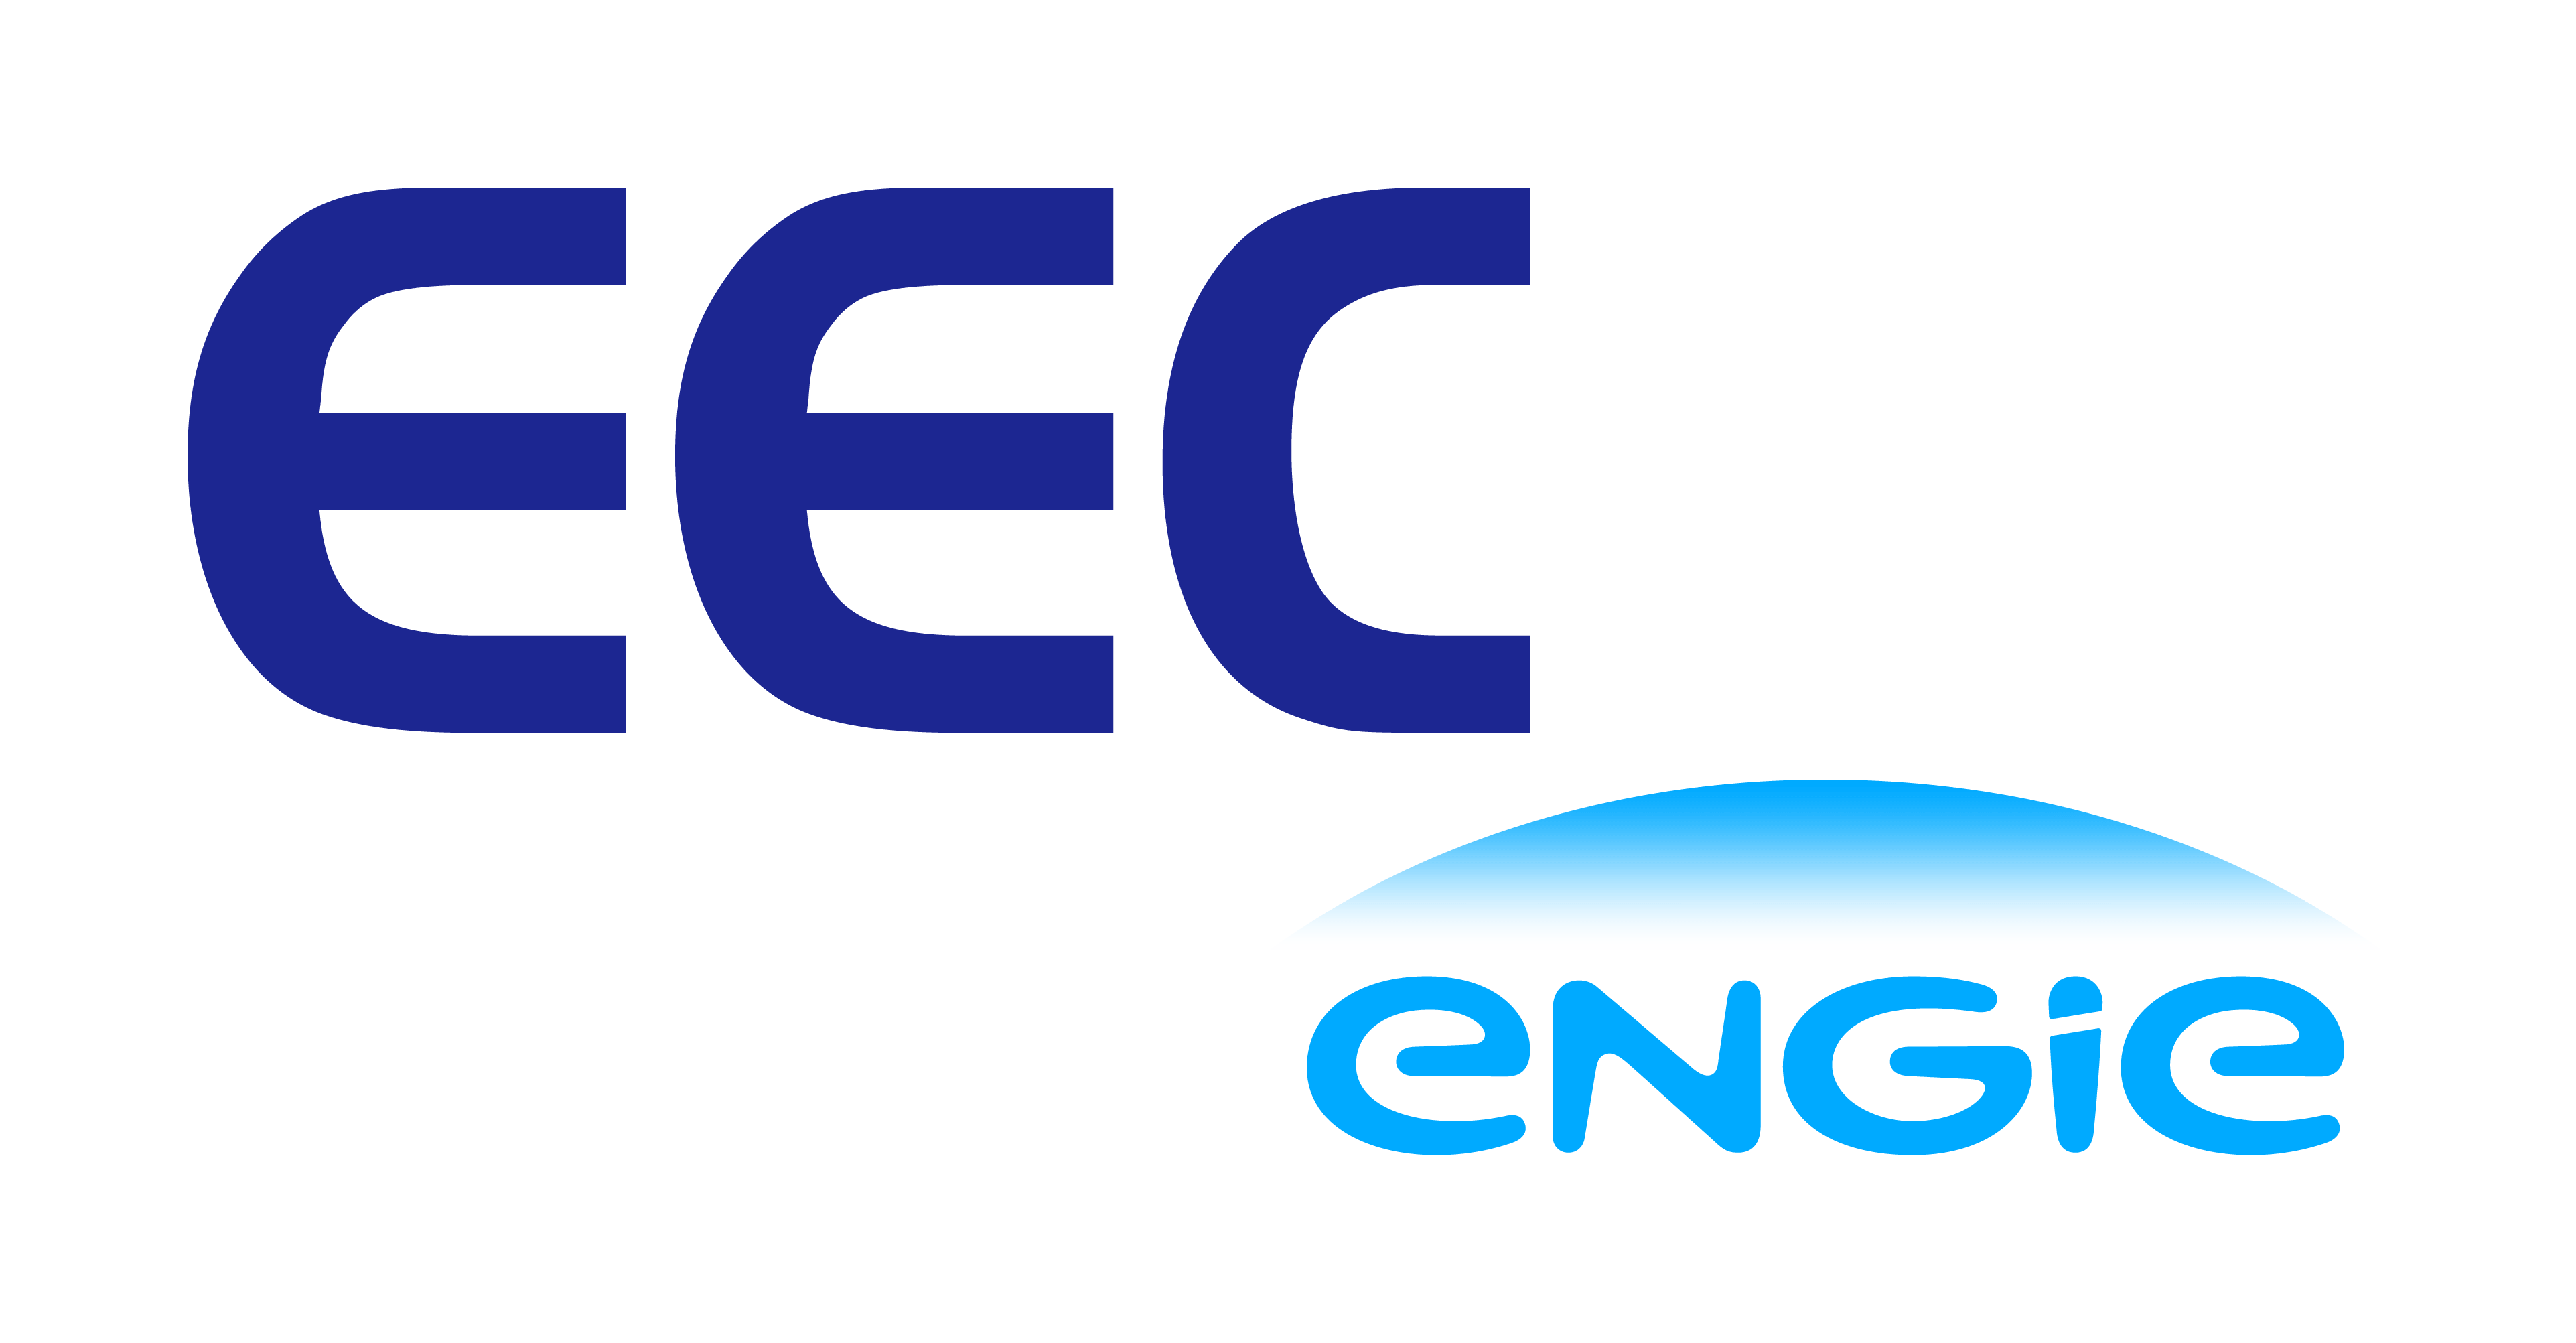 ENGIE_eec_gradient_BLUE_RGB